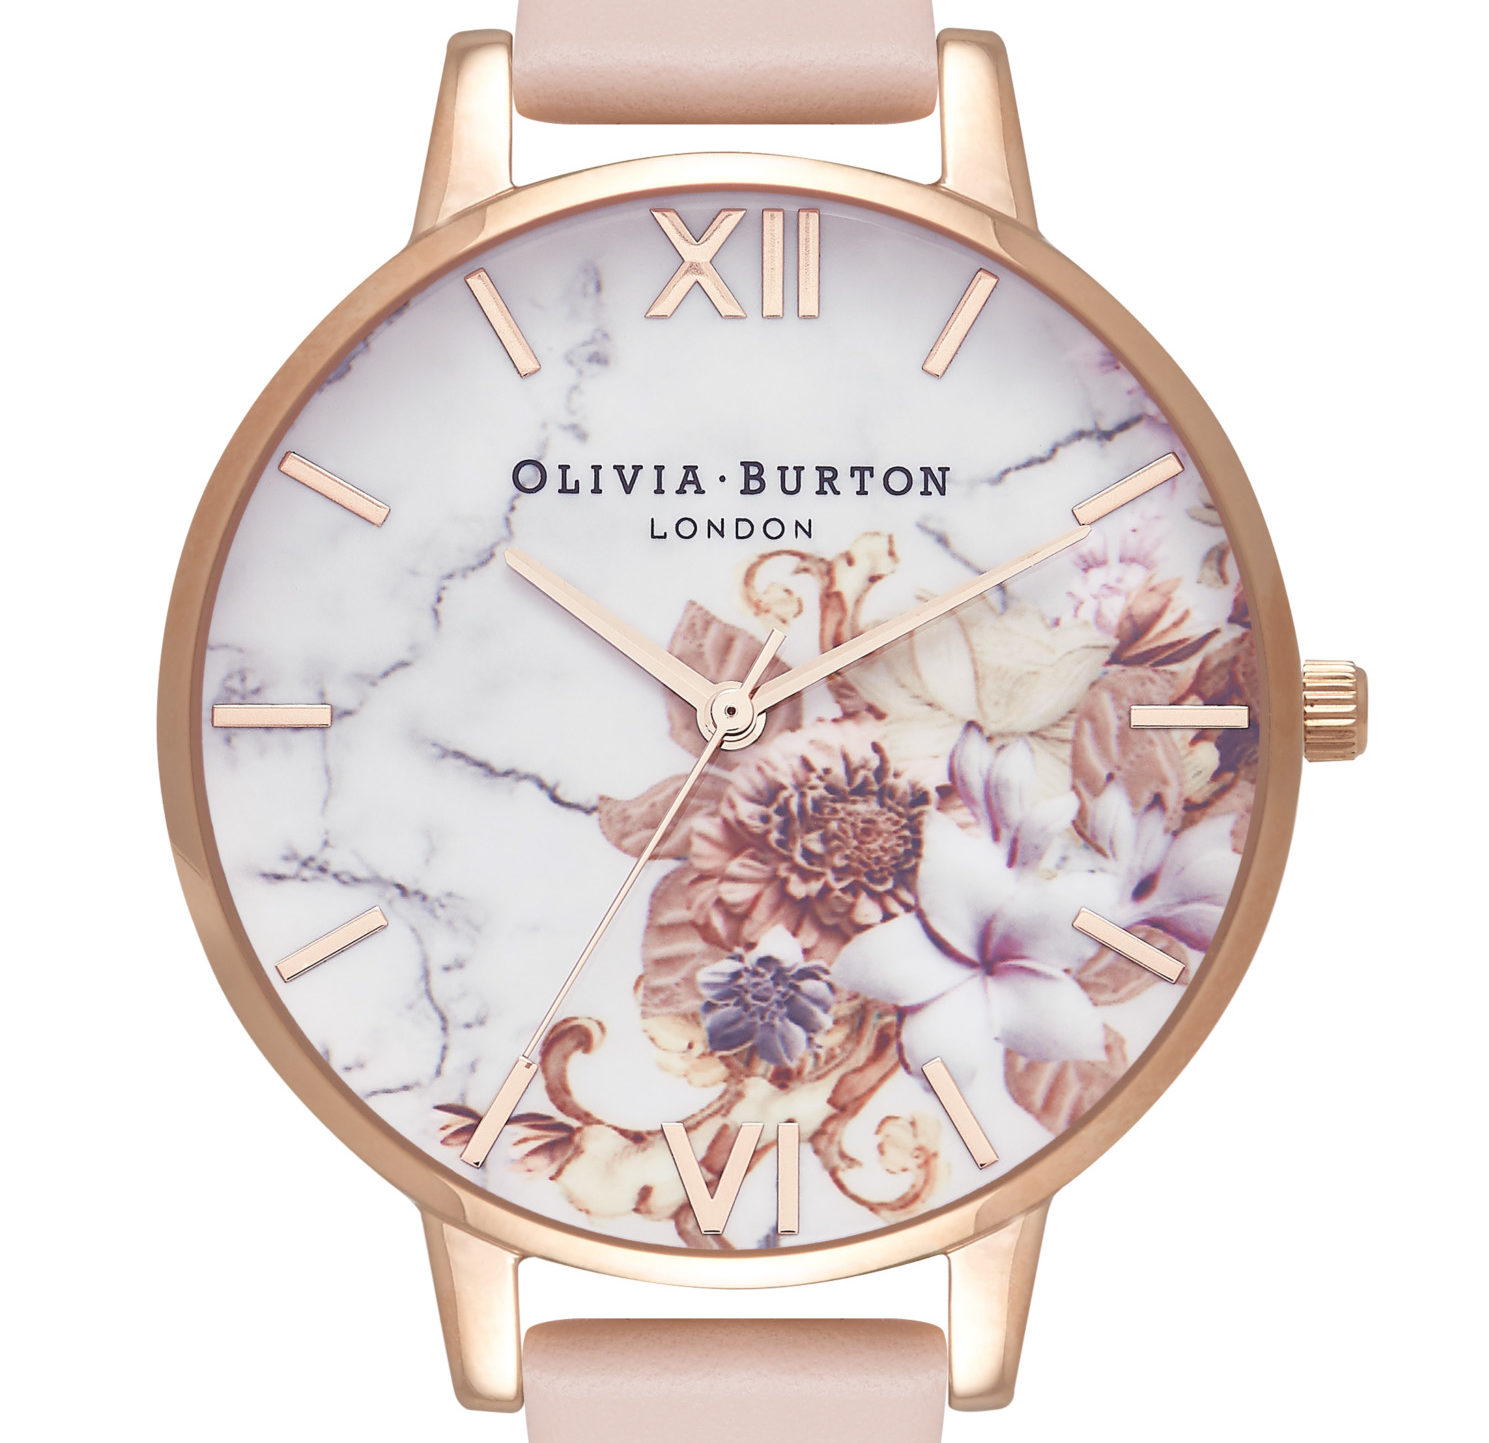 Olivia Burton marble and floral